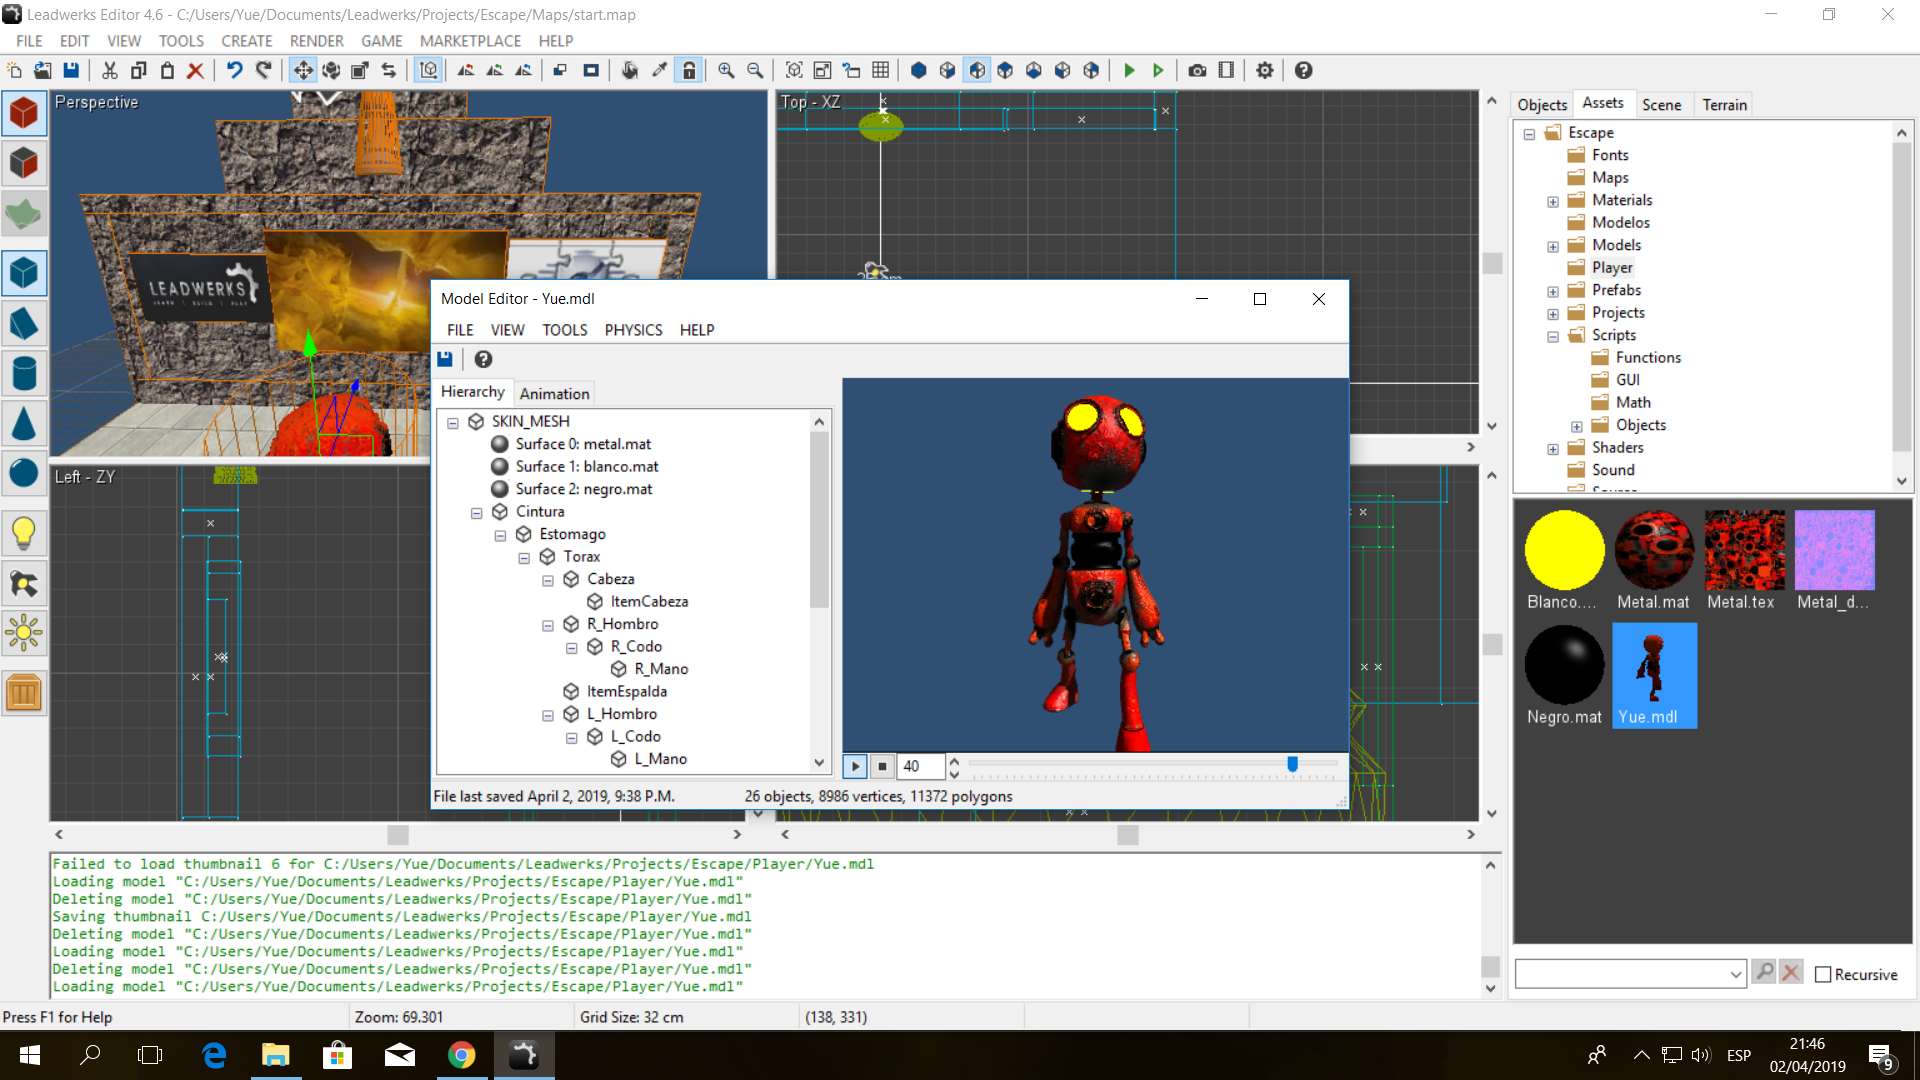 FBX Importing Without Material - Technical Assistance